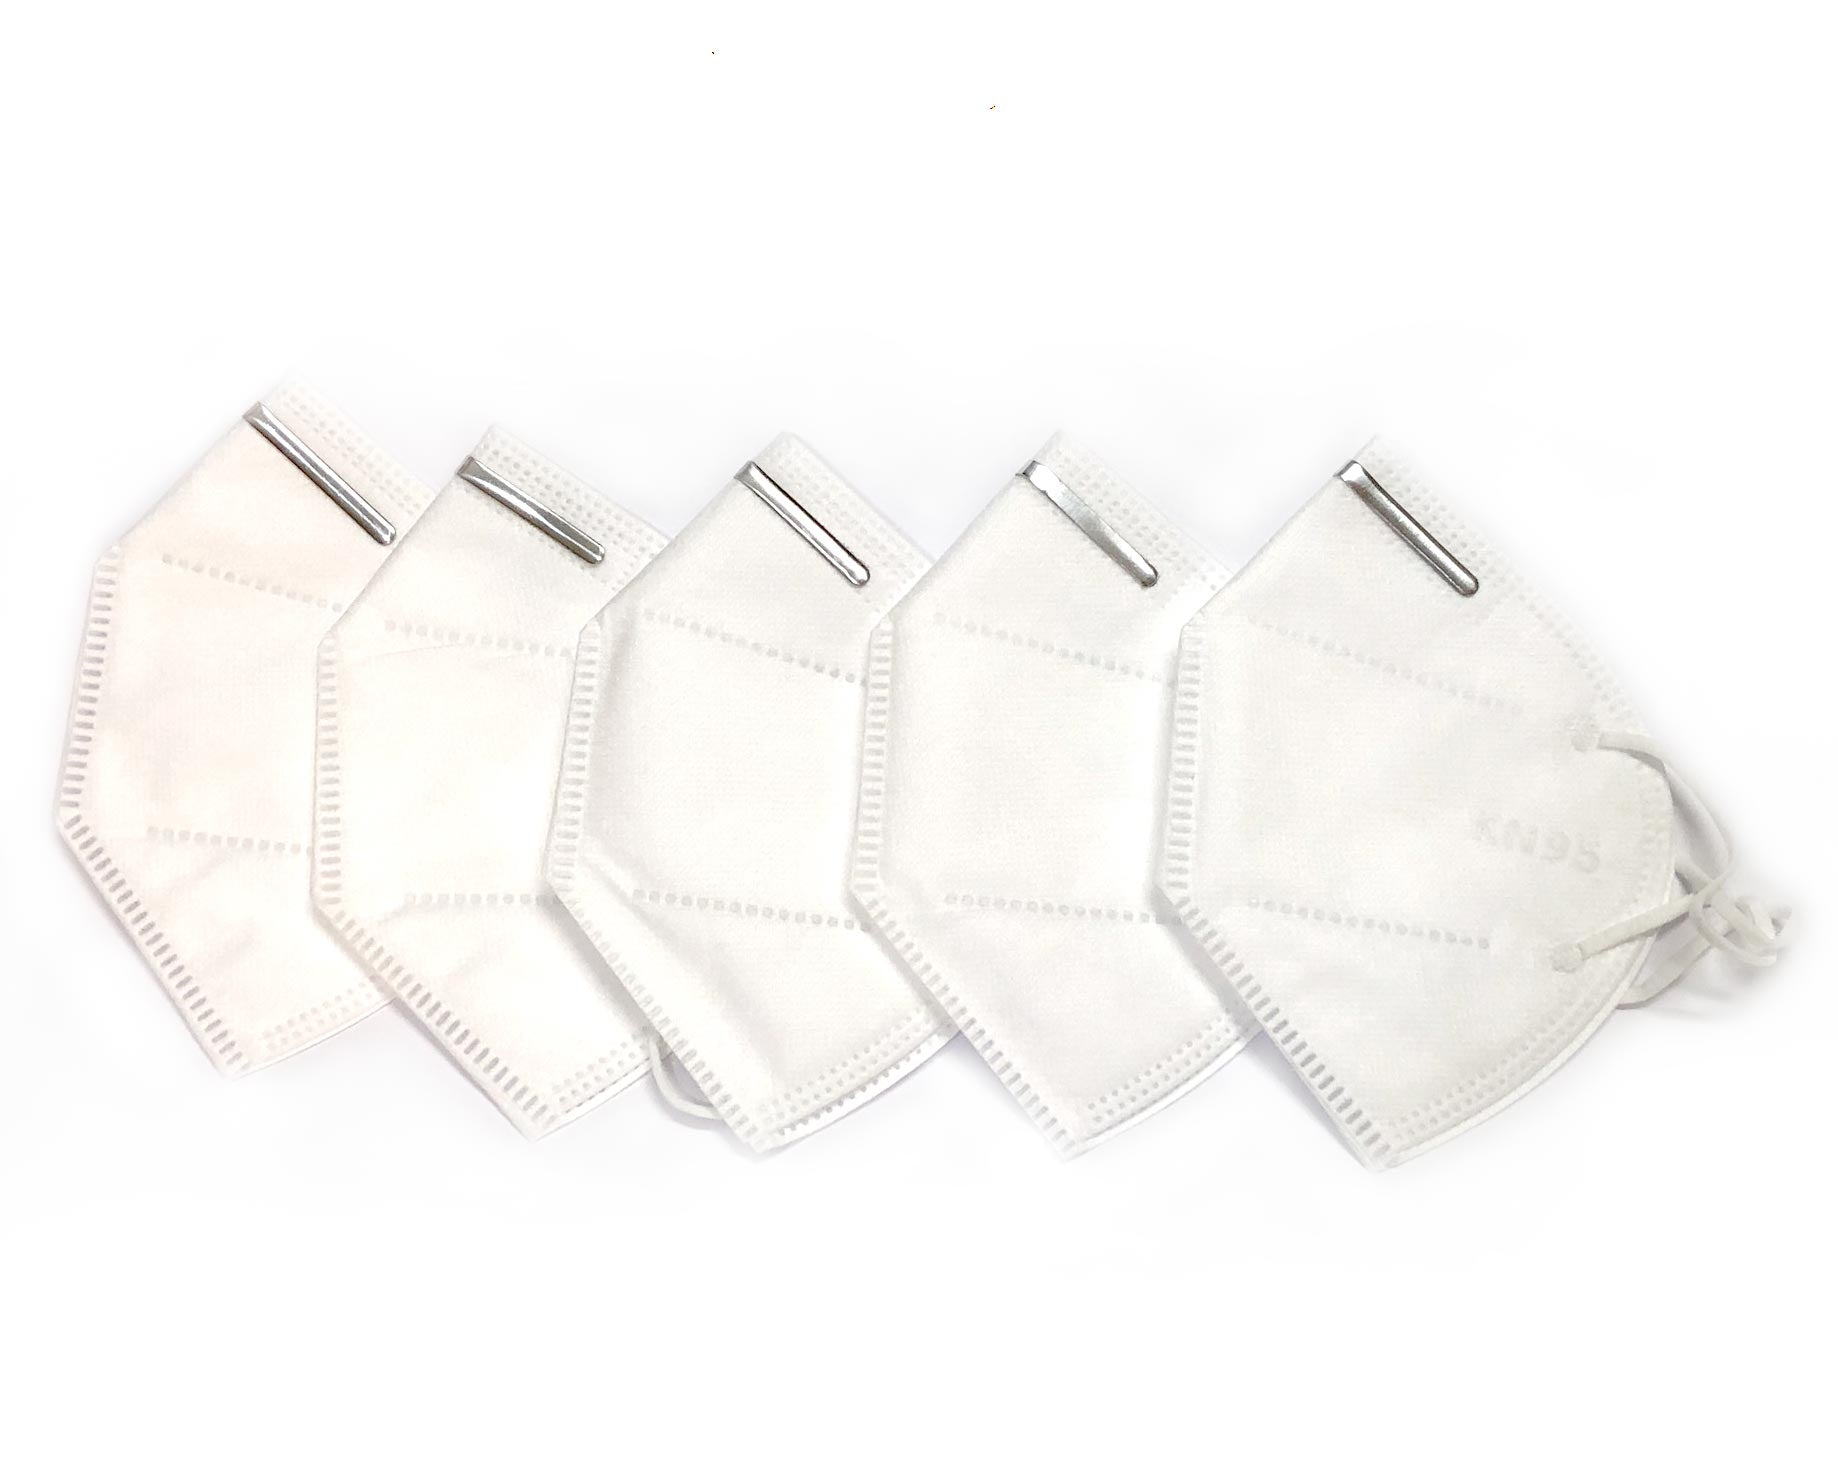 KN95 Face Mask: 5 PCS/pack, 1 PACK, 5 Pieces total